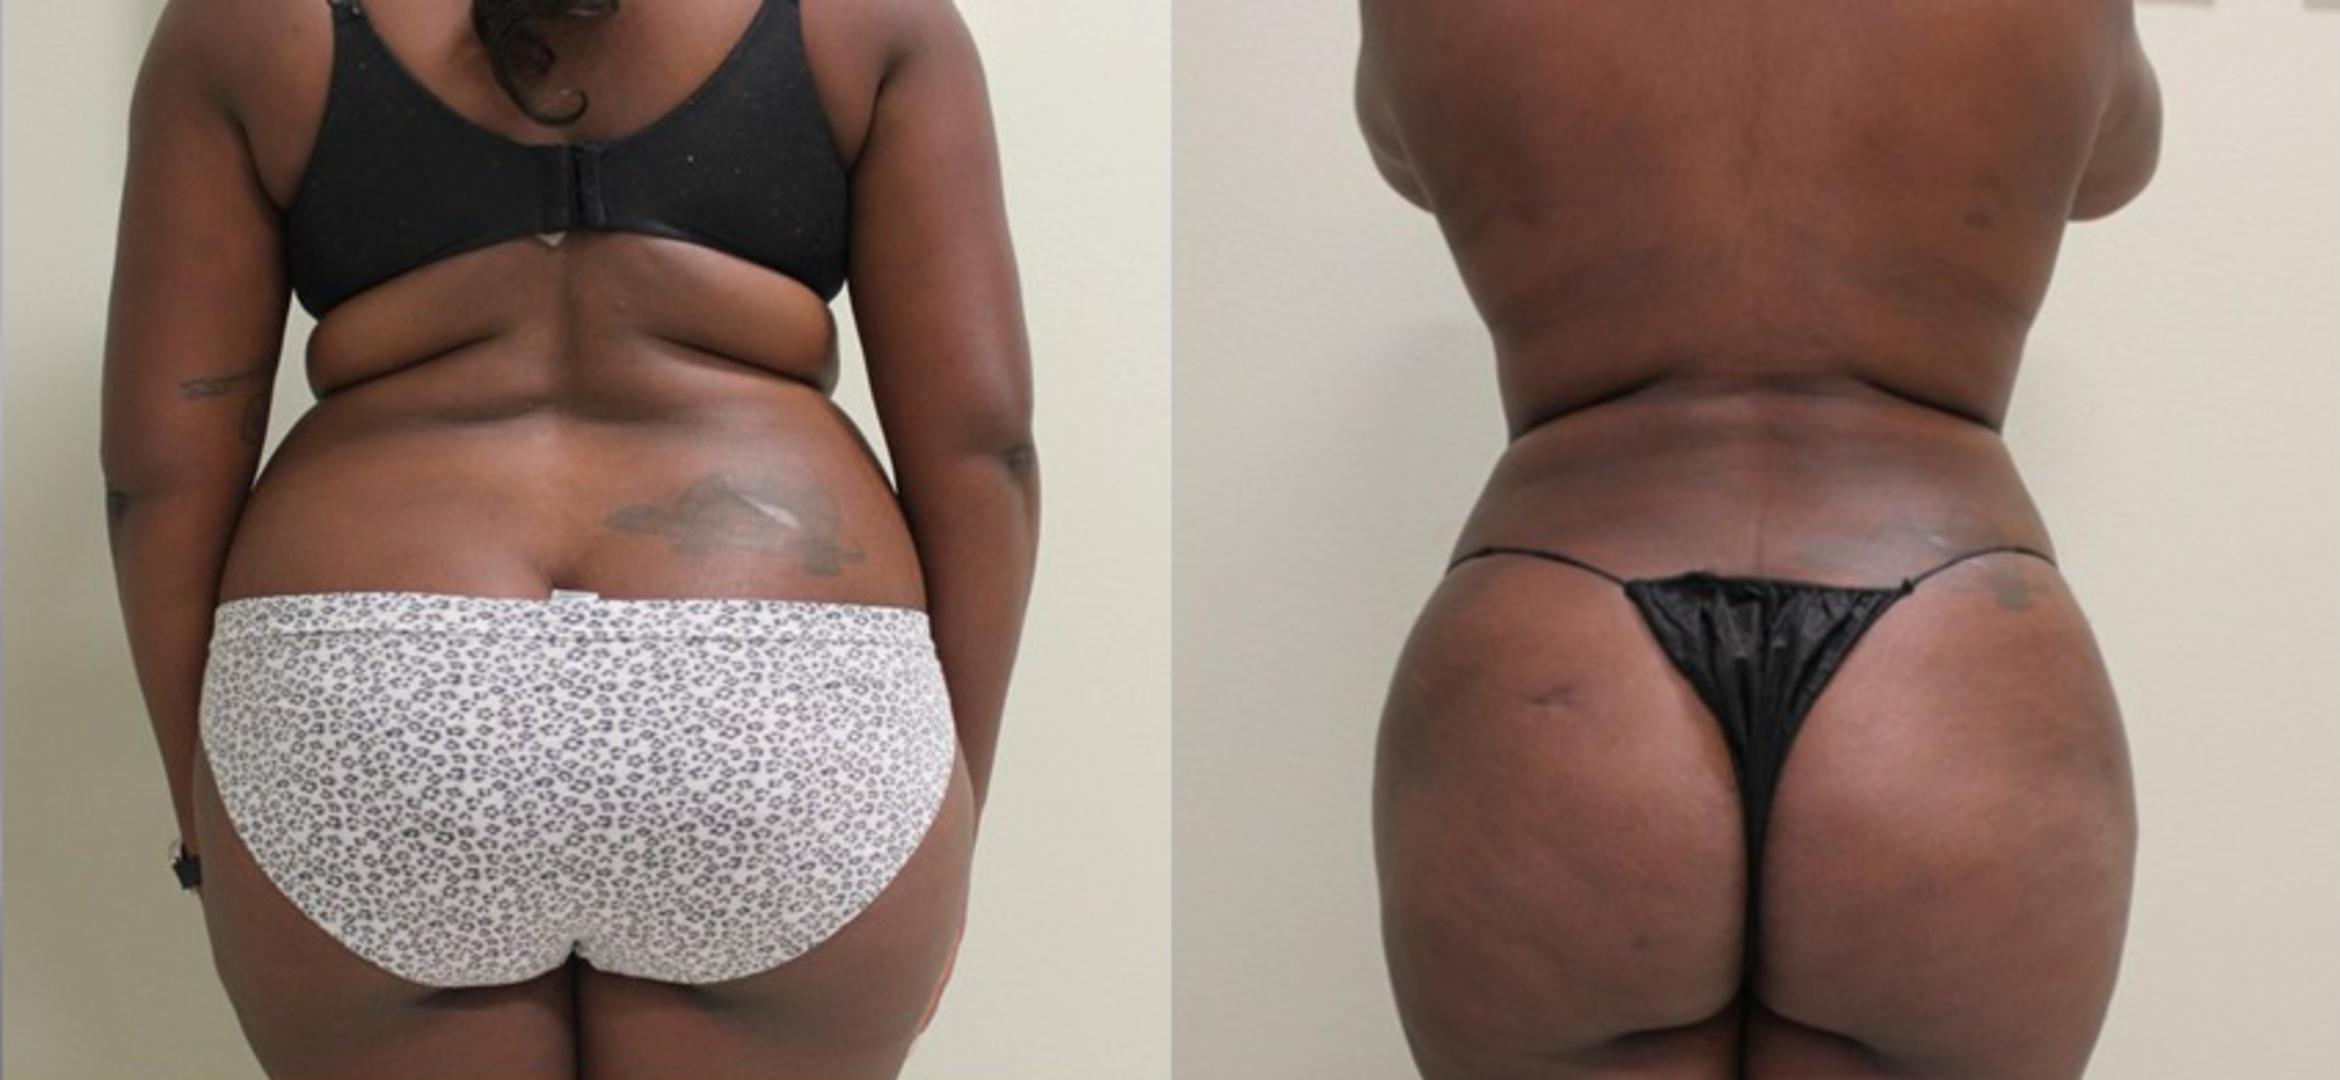 Liposuction Baton Rouge Laser Lipo Hammond Liposuction Surgery La Weiler Plastic Surgery